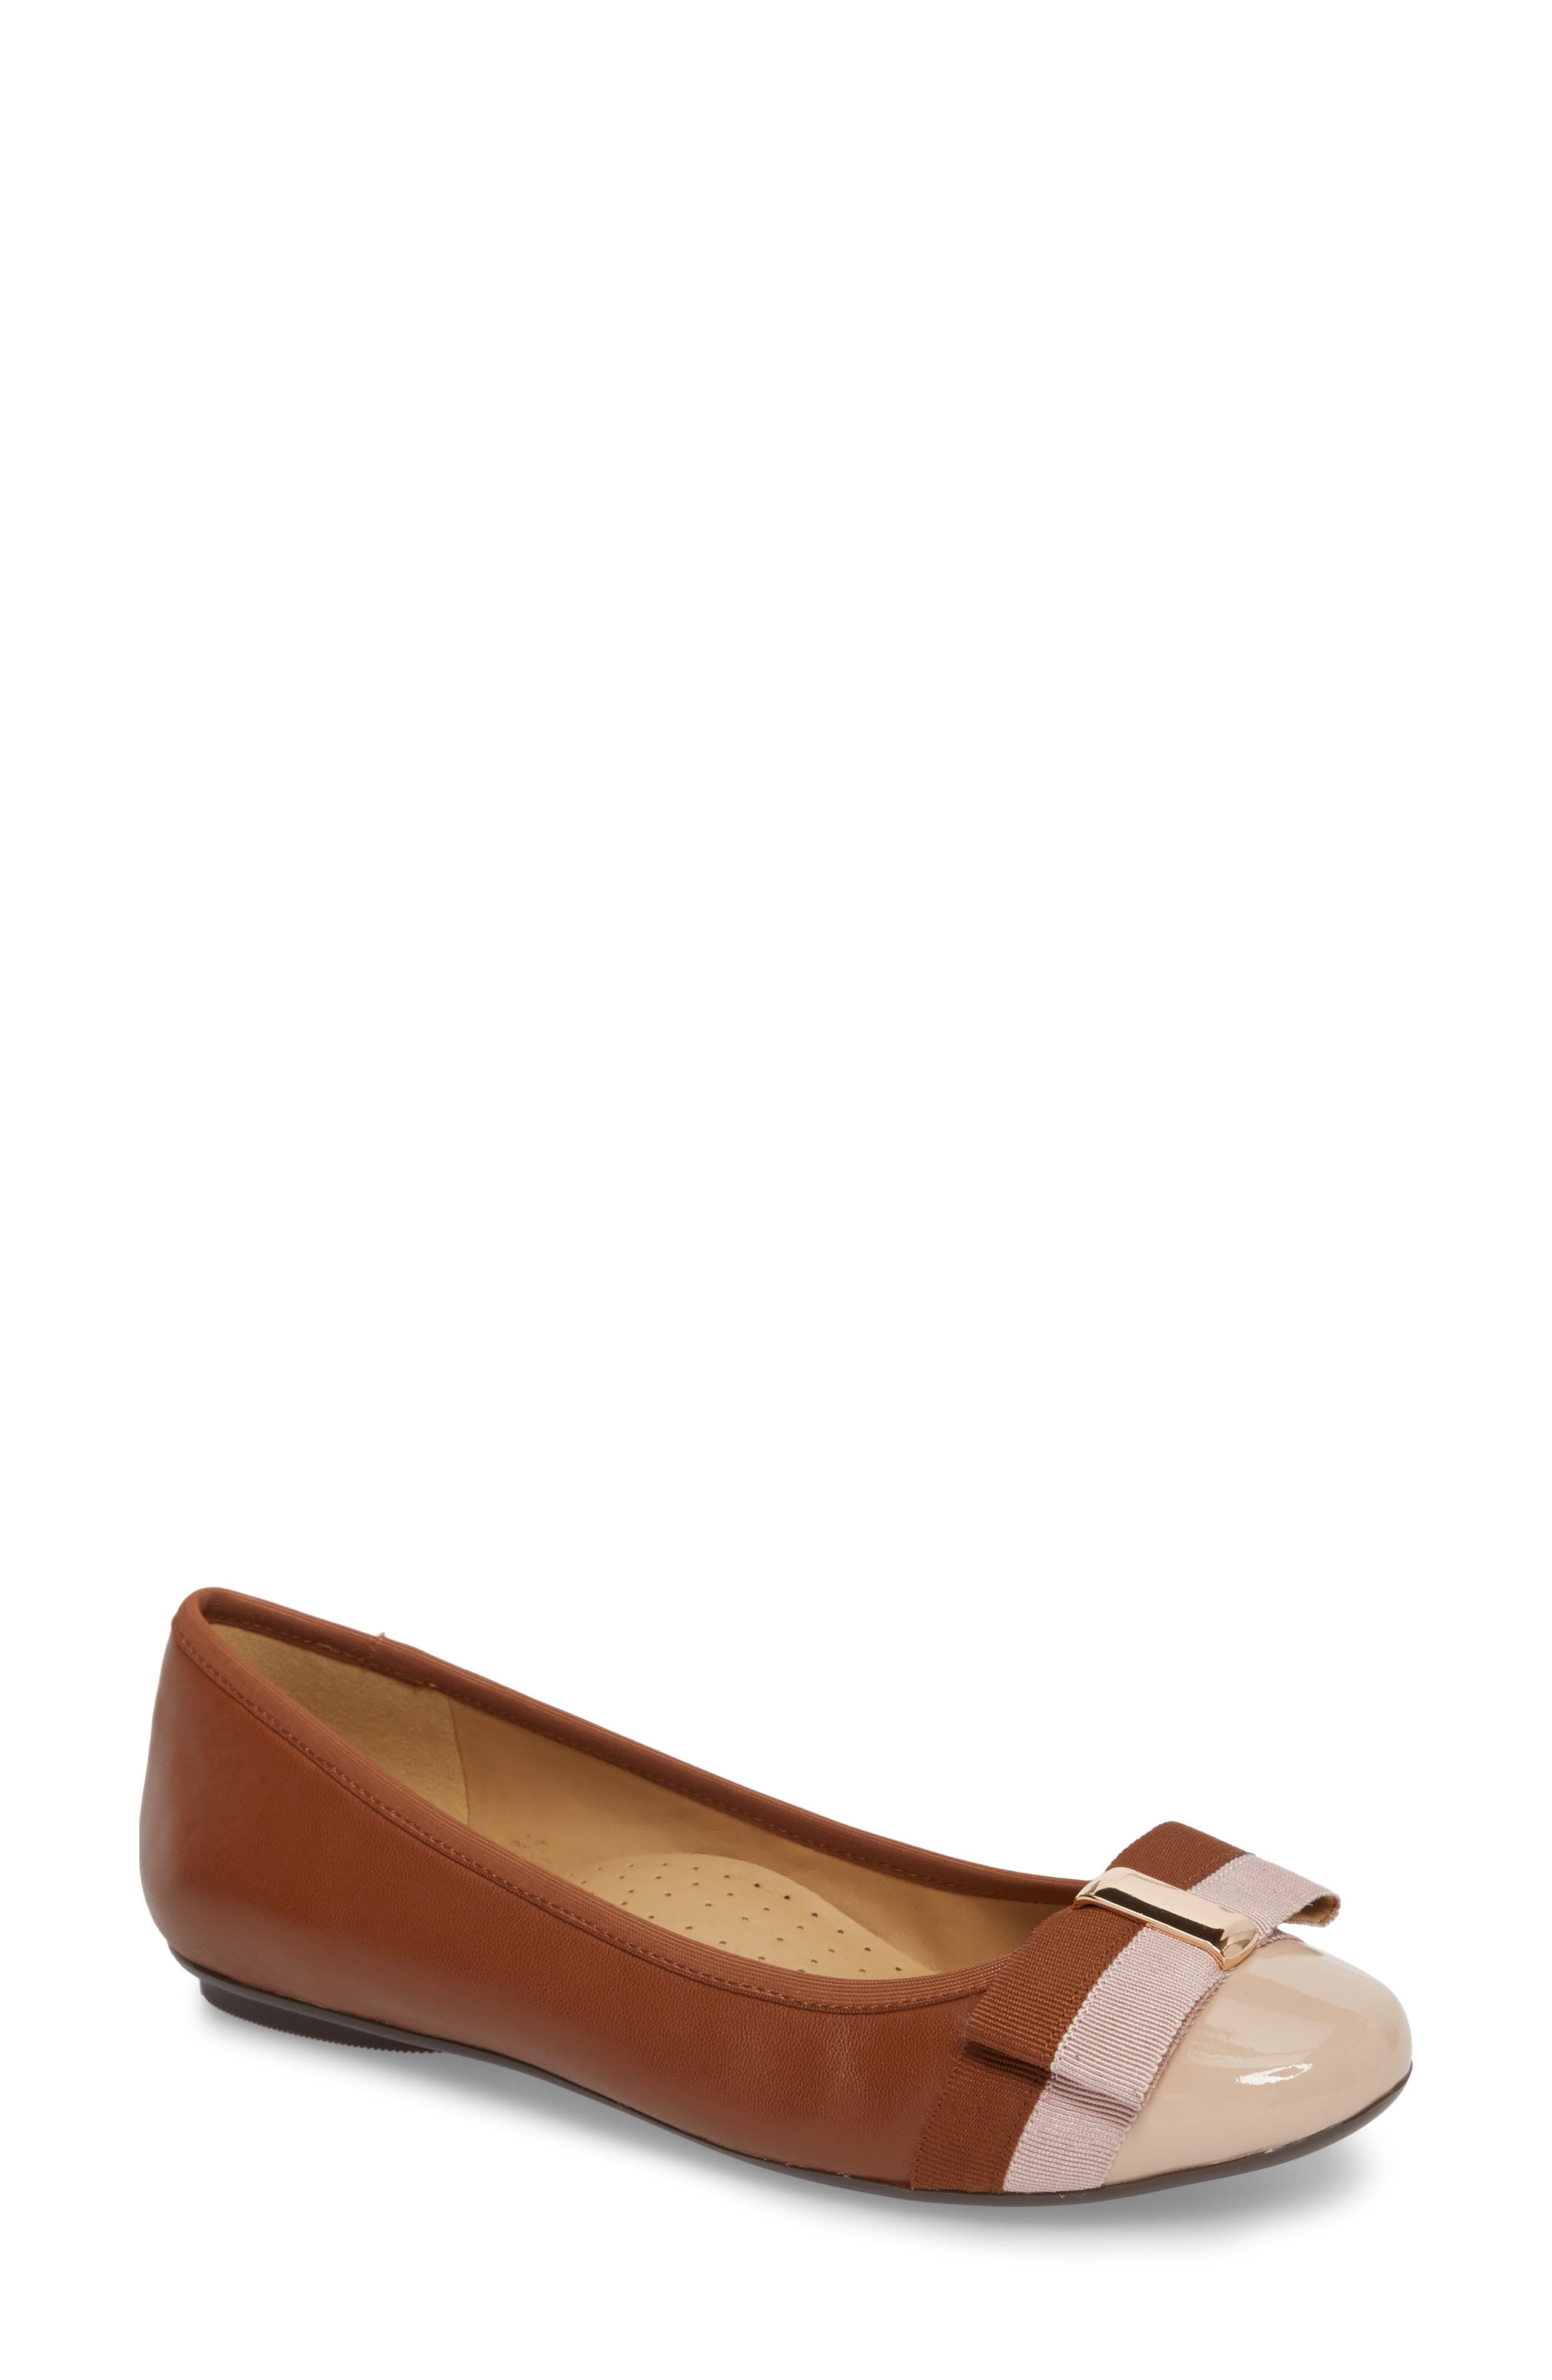 Salia Bow Flat,                         Main,                         color, Cognac Leather